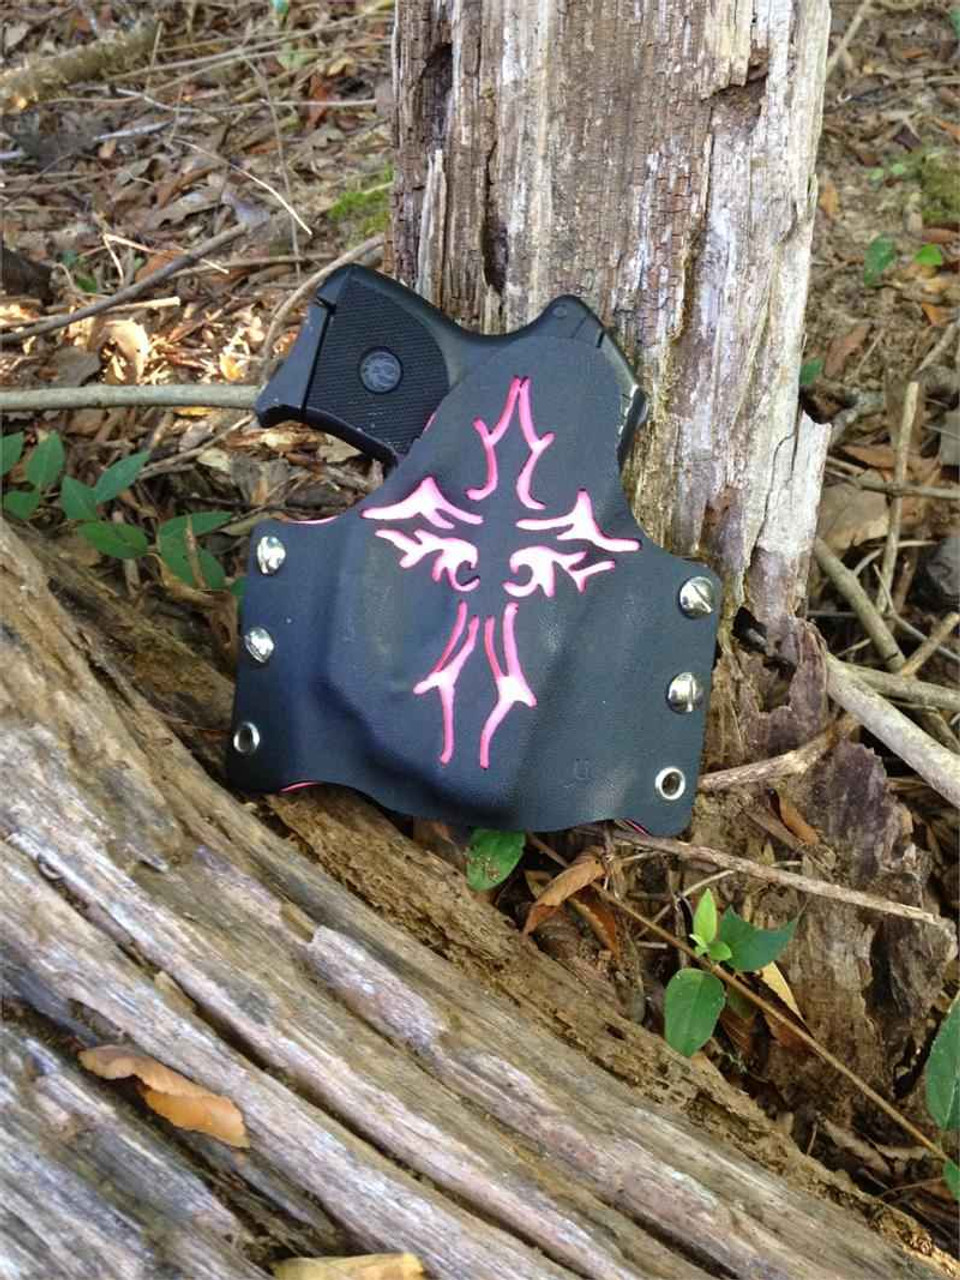 Concealment Custom Commander1, Right Hand, Ruger LCP w/C.T. Laser-Pink